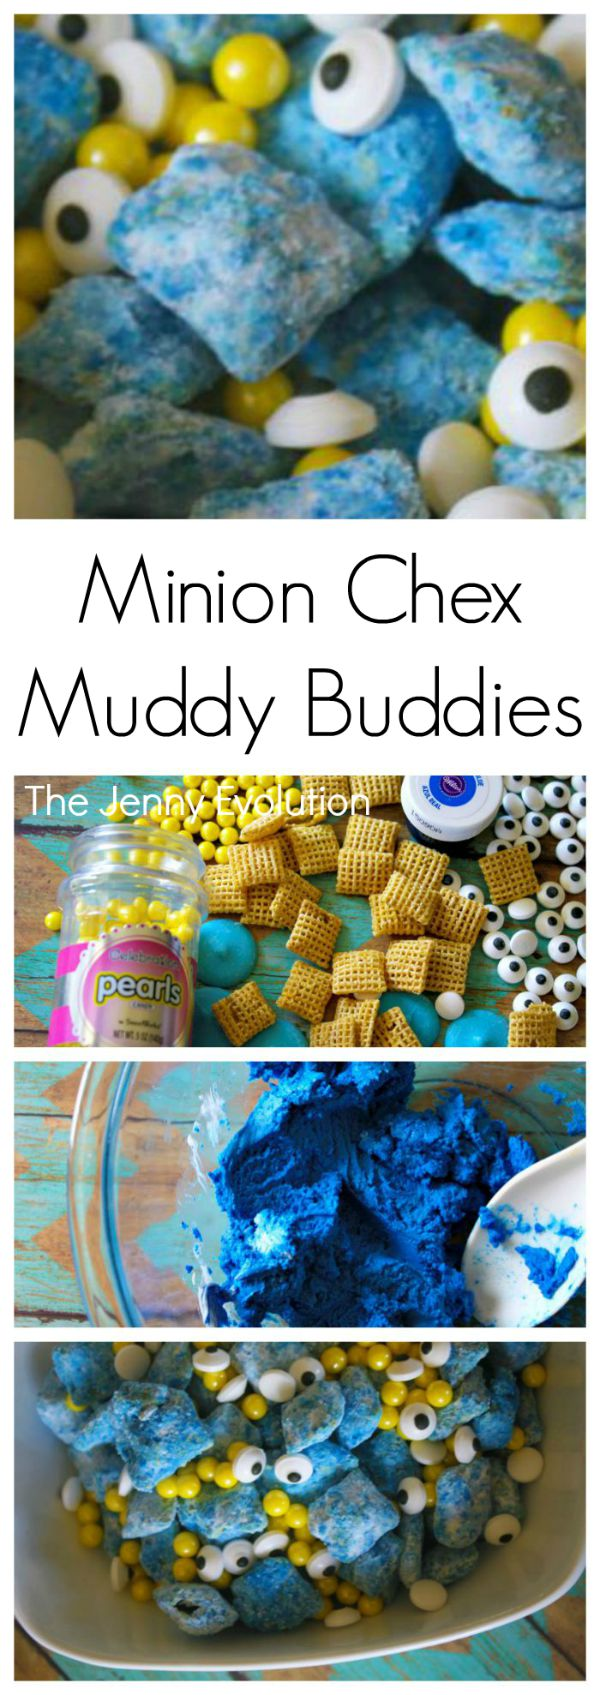 Chex Muddy Buddies Minion Recipe | Mommy Evolution